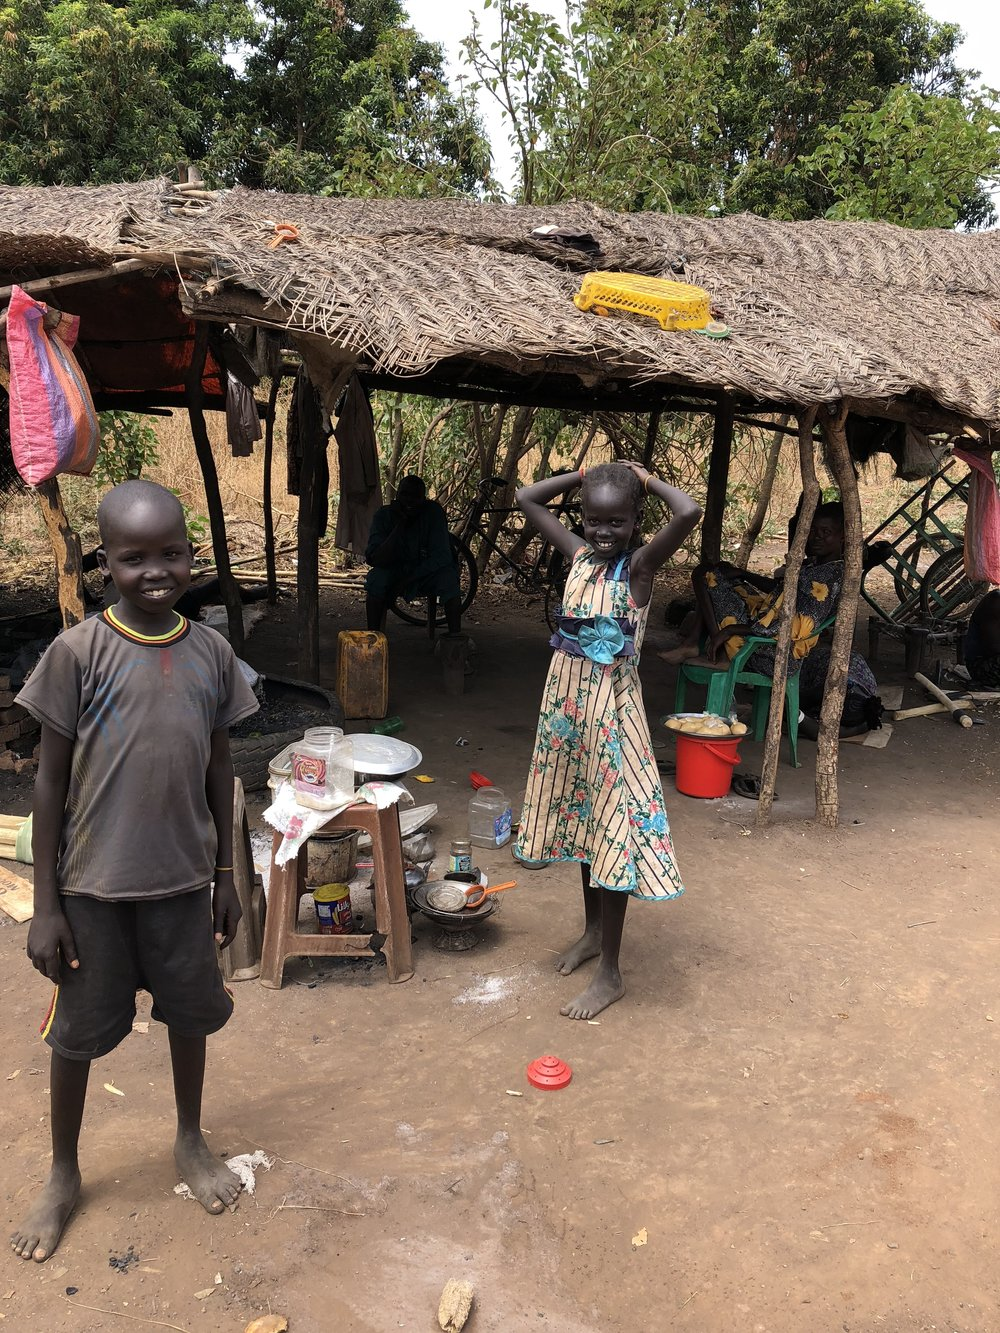 Children stand near a market in Wau.